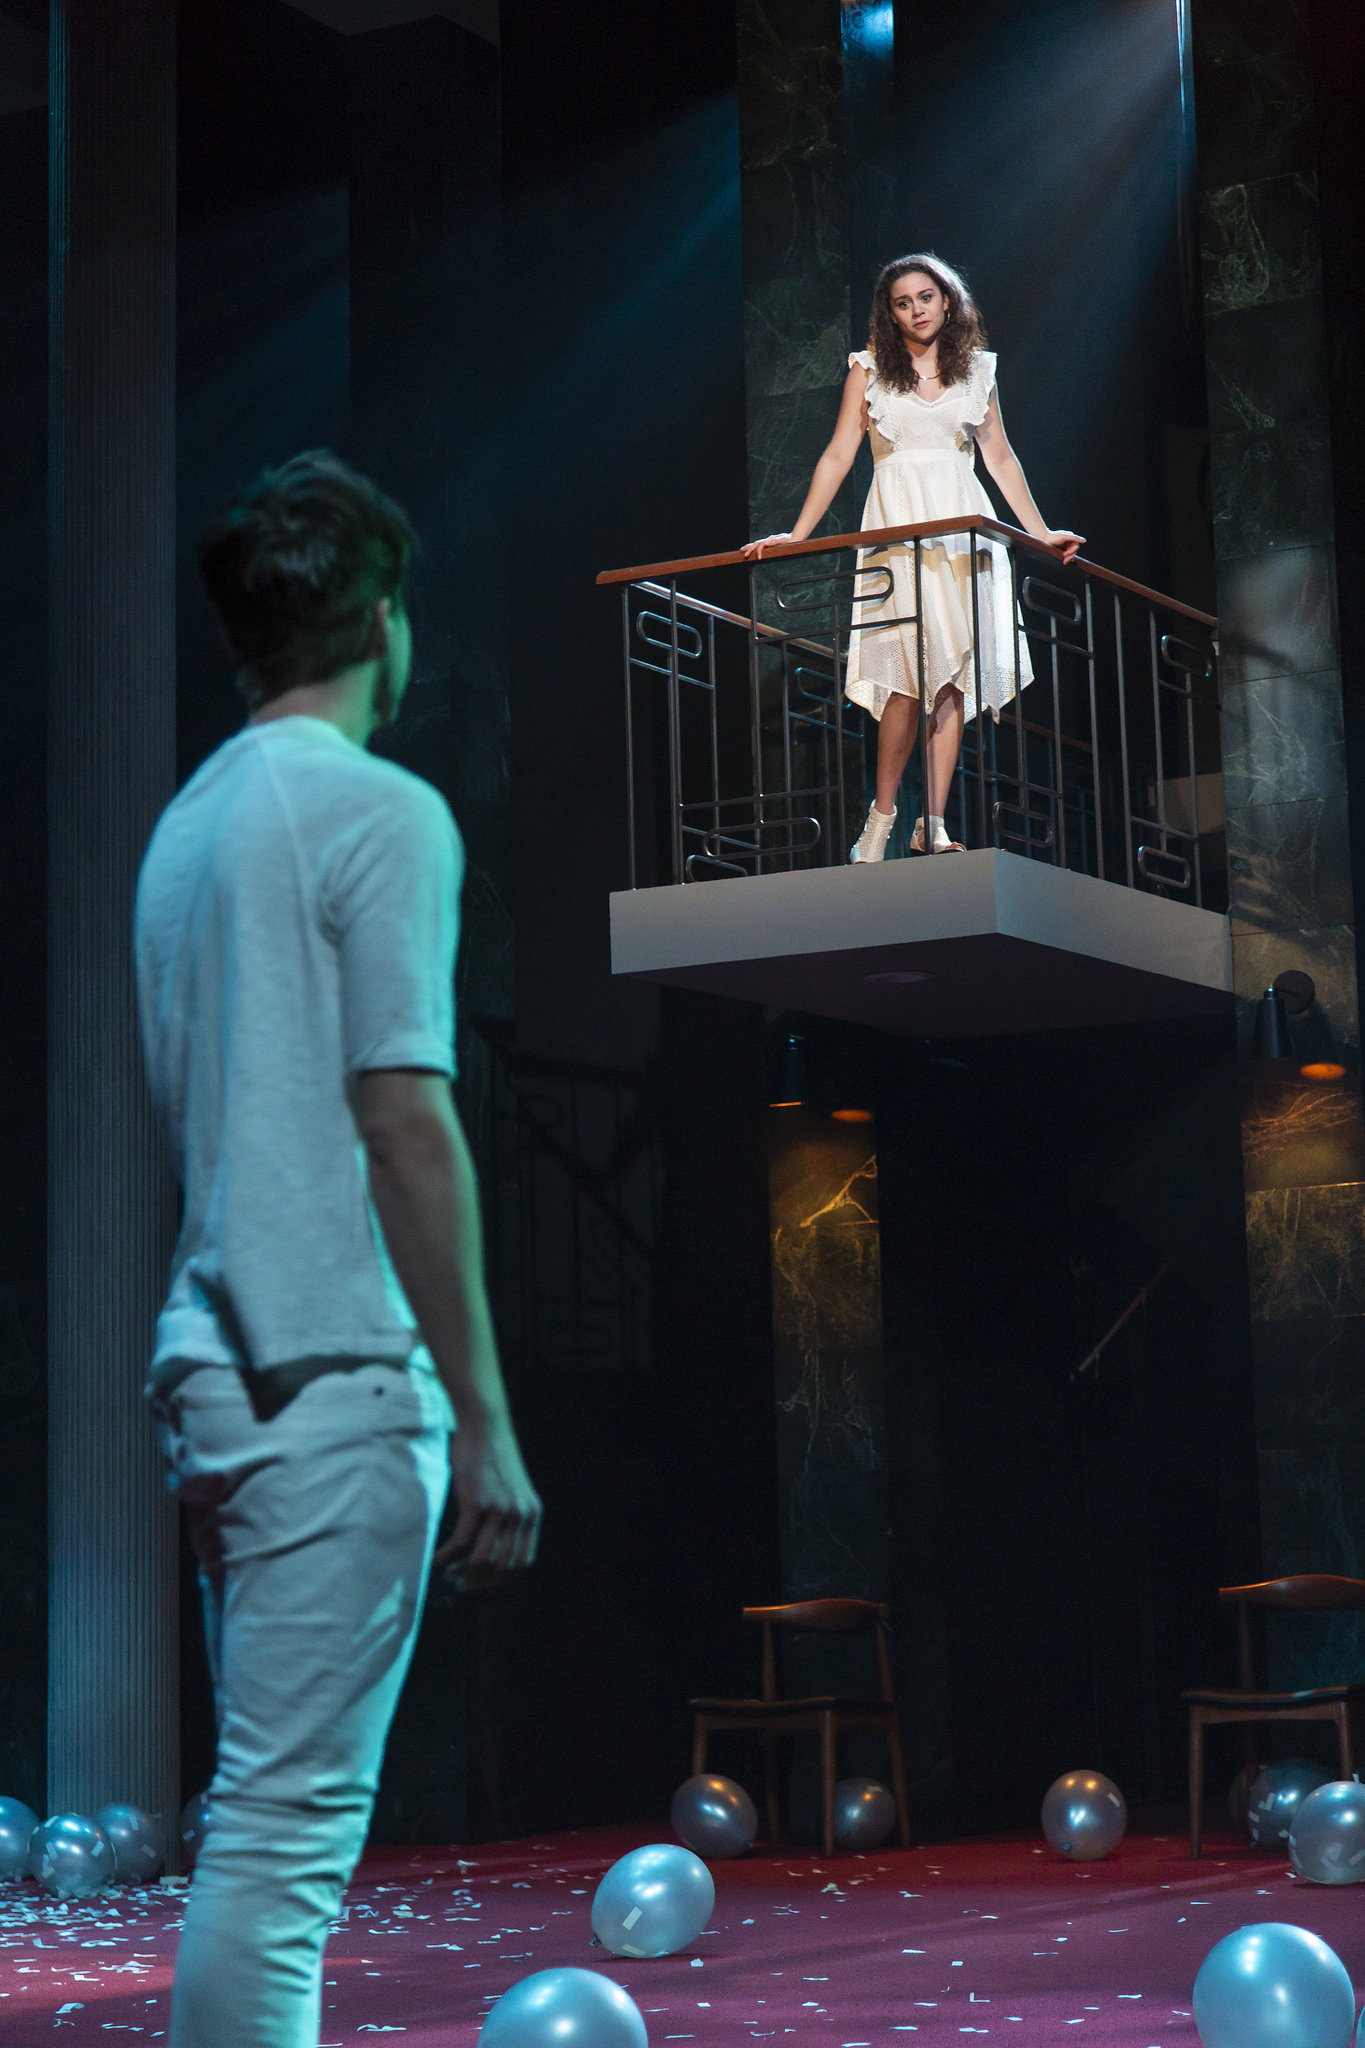 Lily Santiago and George Hampe ROMEO AND JULIET Huntington Theatre Company Avenue of the Arts / Huntington Avenue Theatre March 1 - 31, 2019 Photo: T. Charles Erickson